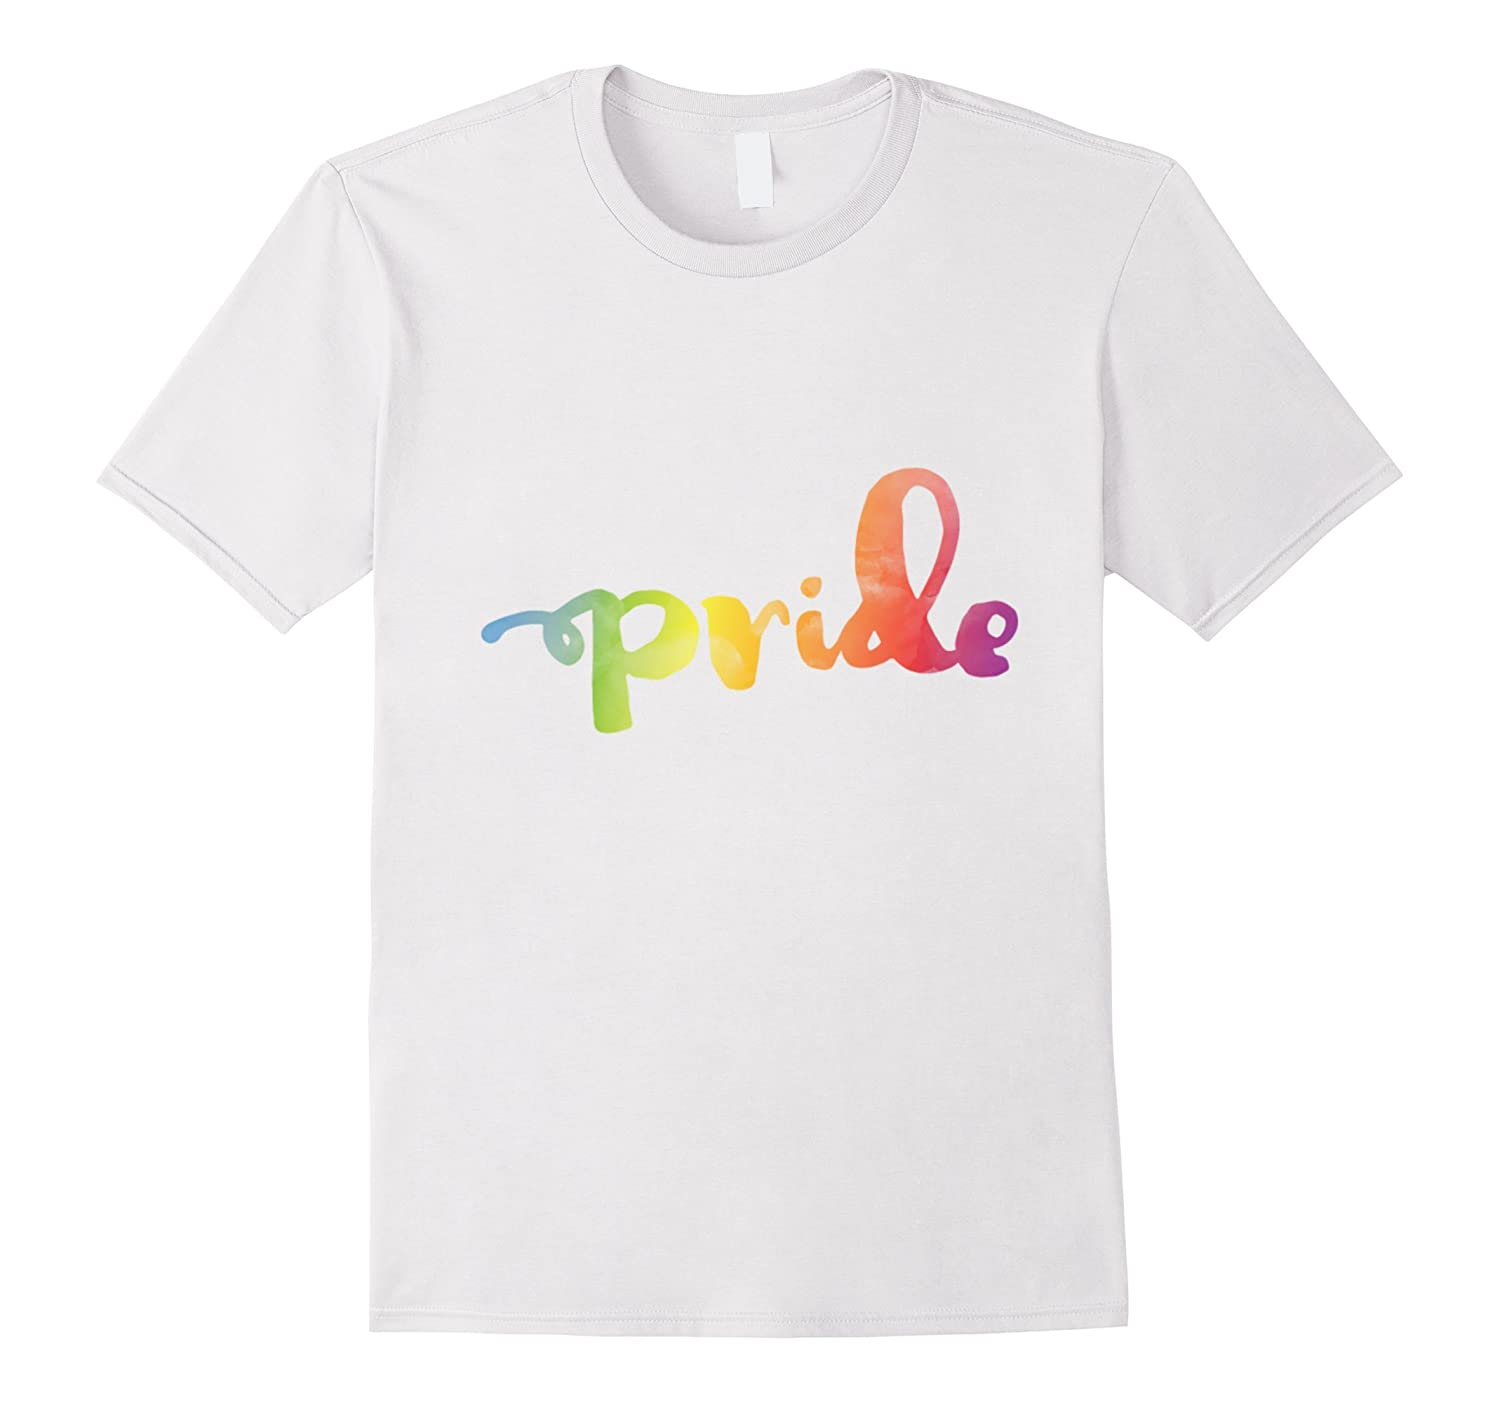 Pride T-Shirt For LGBT Gay Pride Month 2016-RT